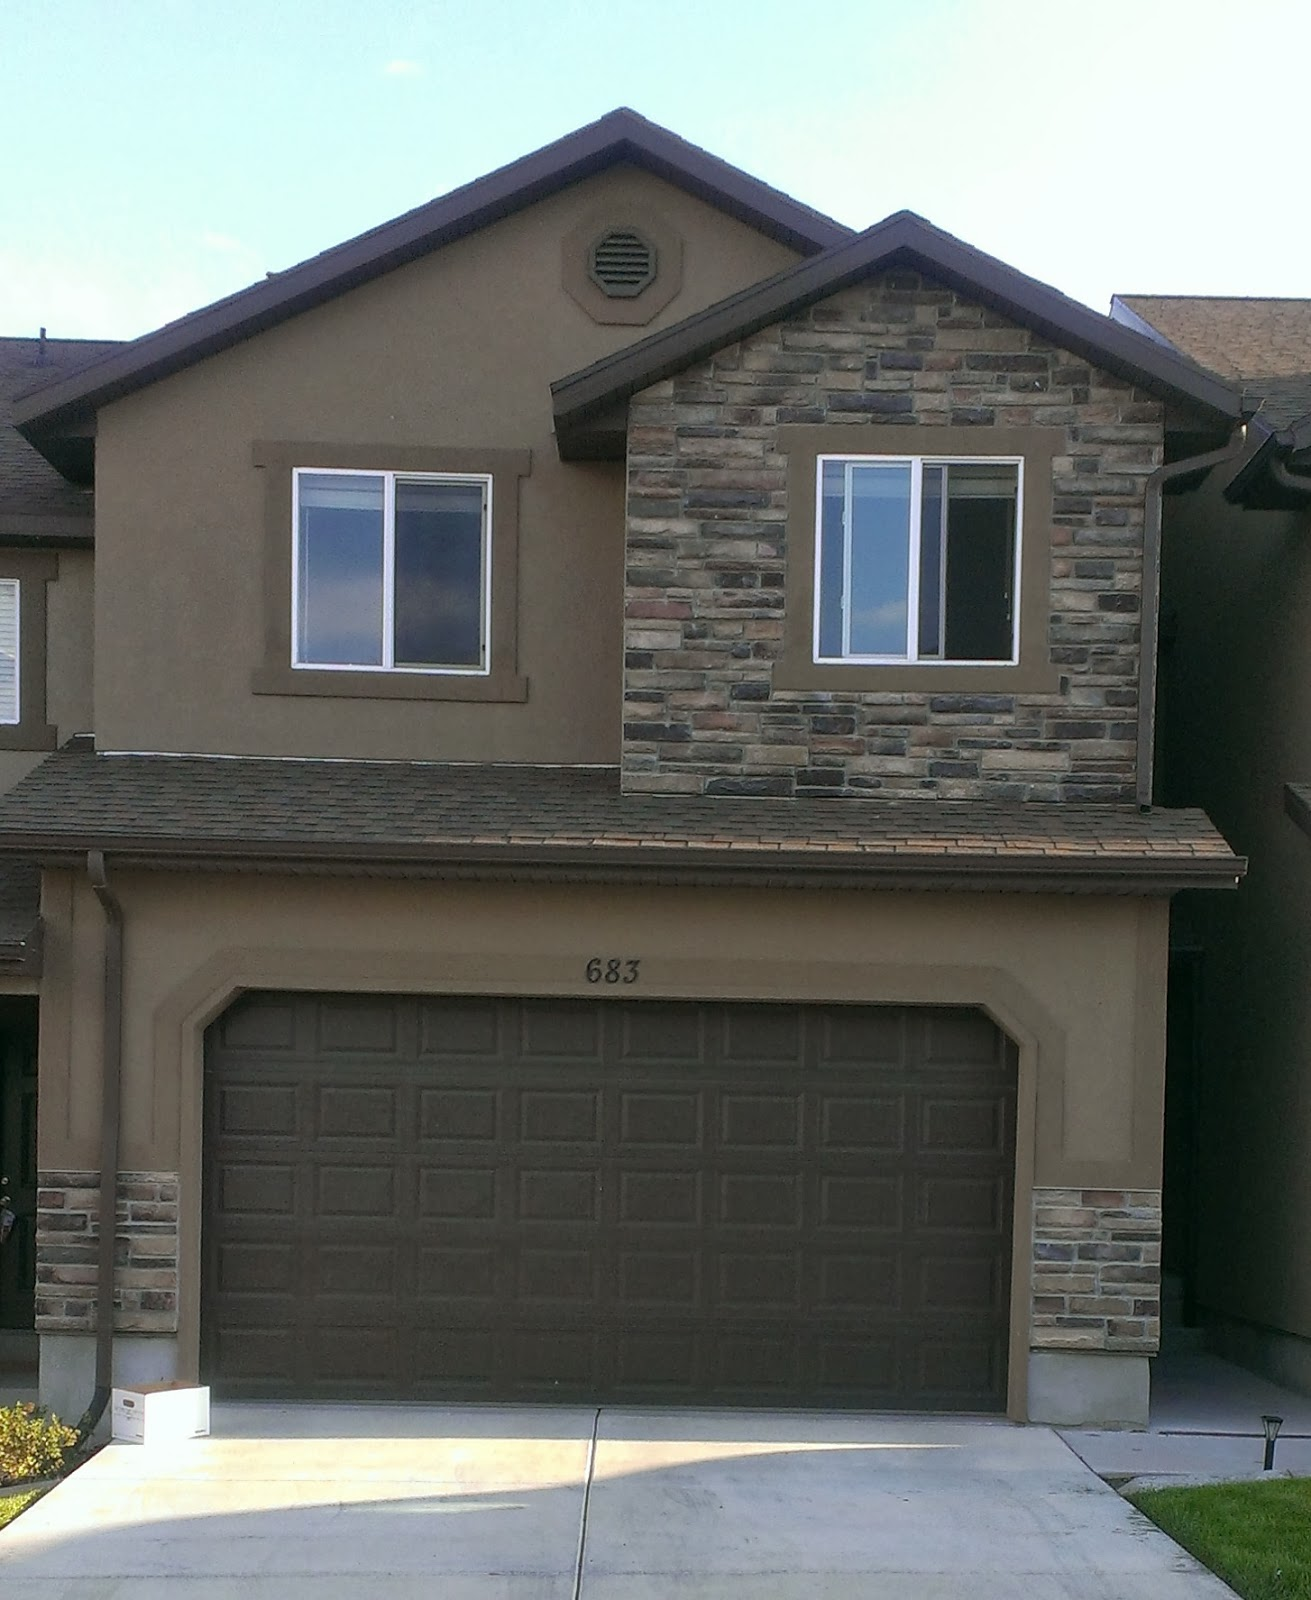 Condos For Rent With Garage: Locate Utah Homes: Saratoga Springs, Utah Townhouse With 2